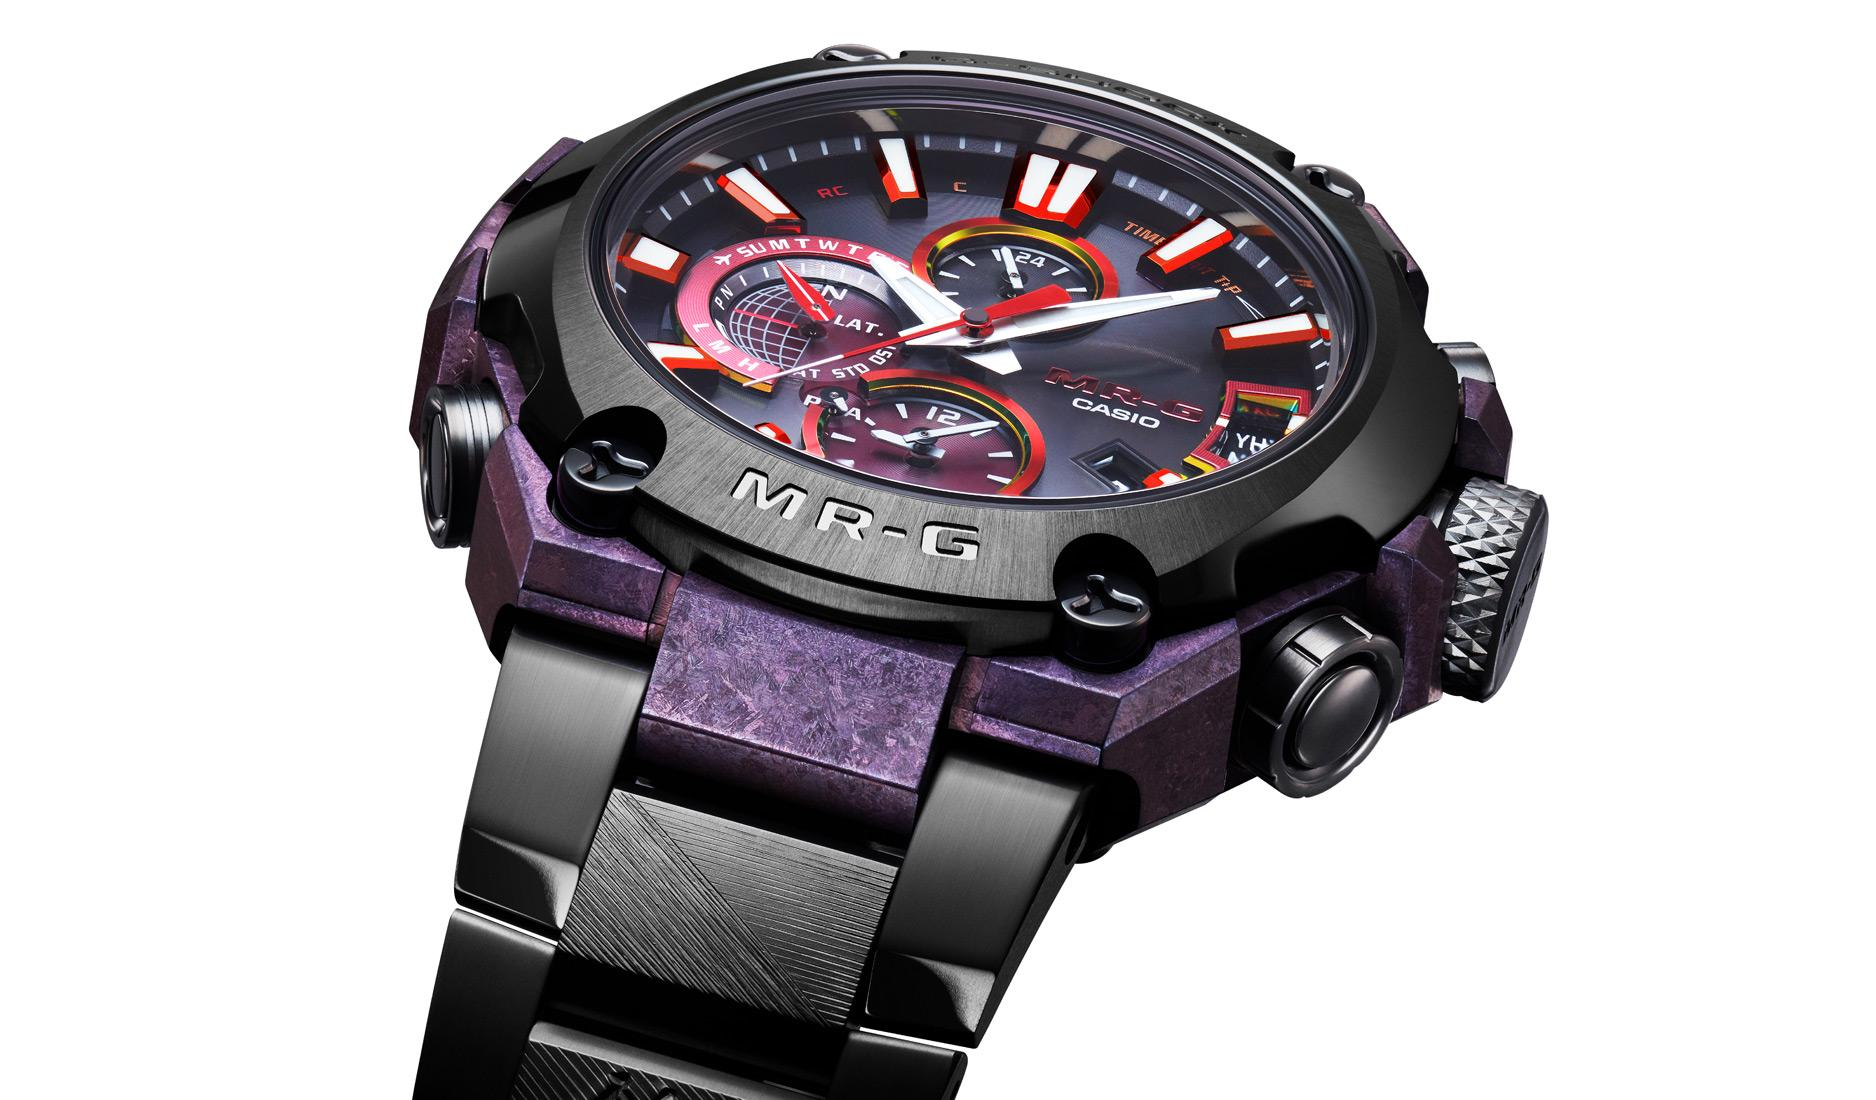 G-Shock MRG-G2000GA limited edition with artisanal materials and finishing